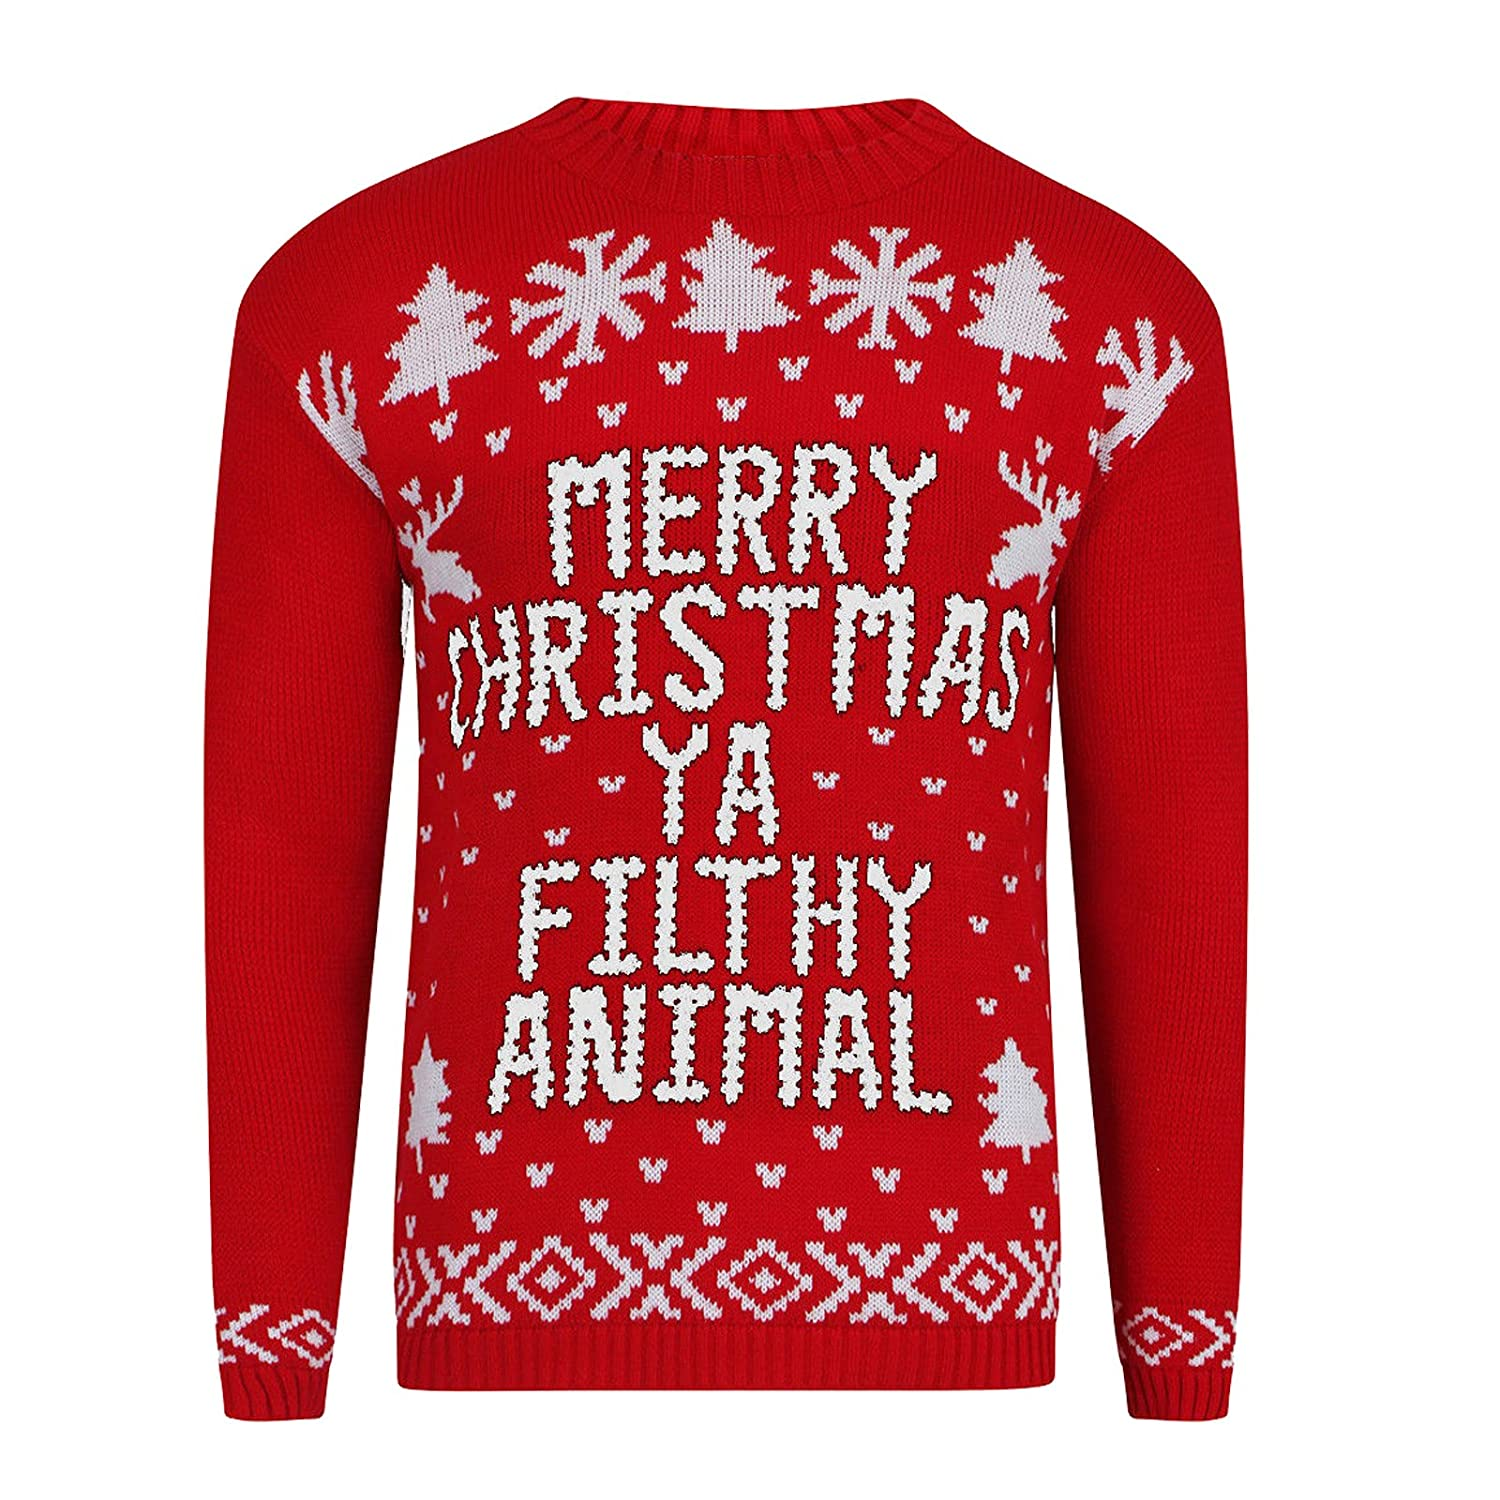 Xmas Jumper Merry Christmas Ya Filthy Animal Ladies Christmas Novelty Pullover ZF-FLTANIMAL-$P